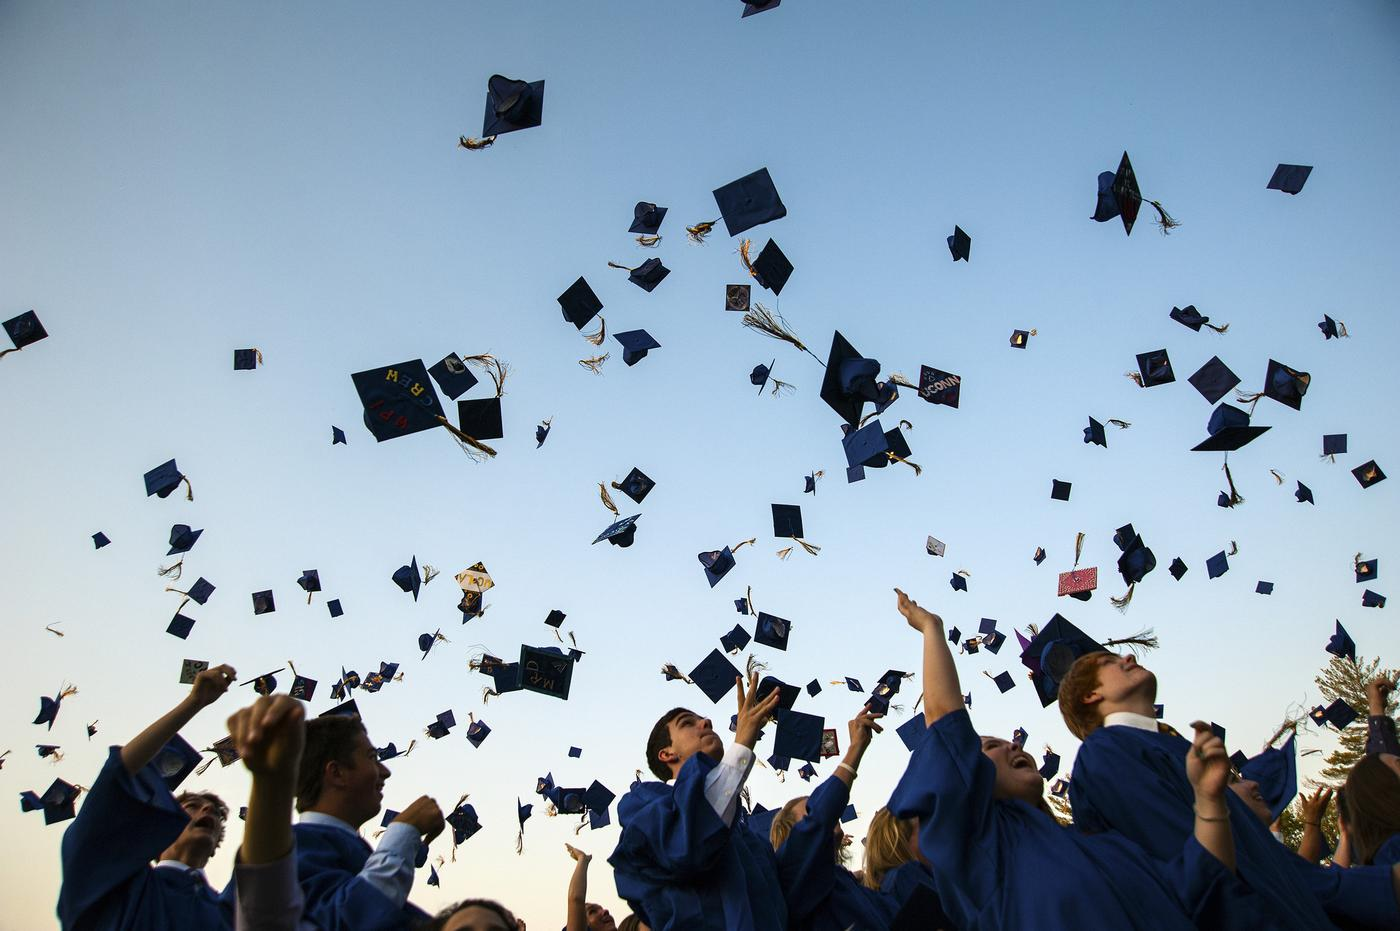 636053241284023565-1698910486_635993185839763884-1853824258_high_school_graduation.jpg